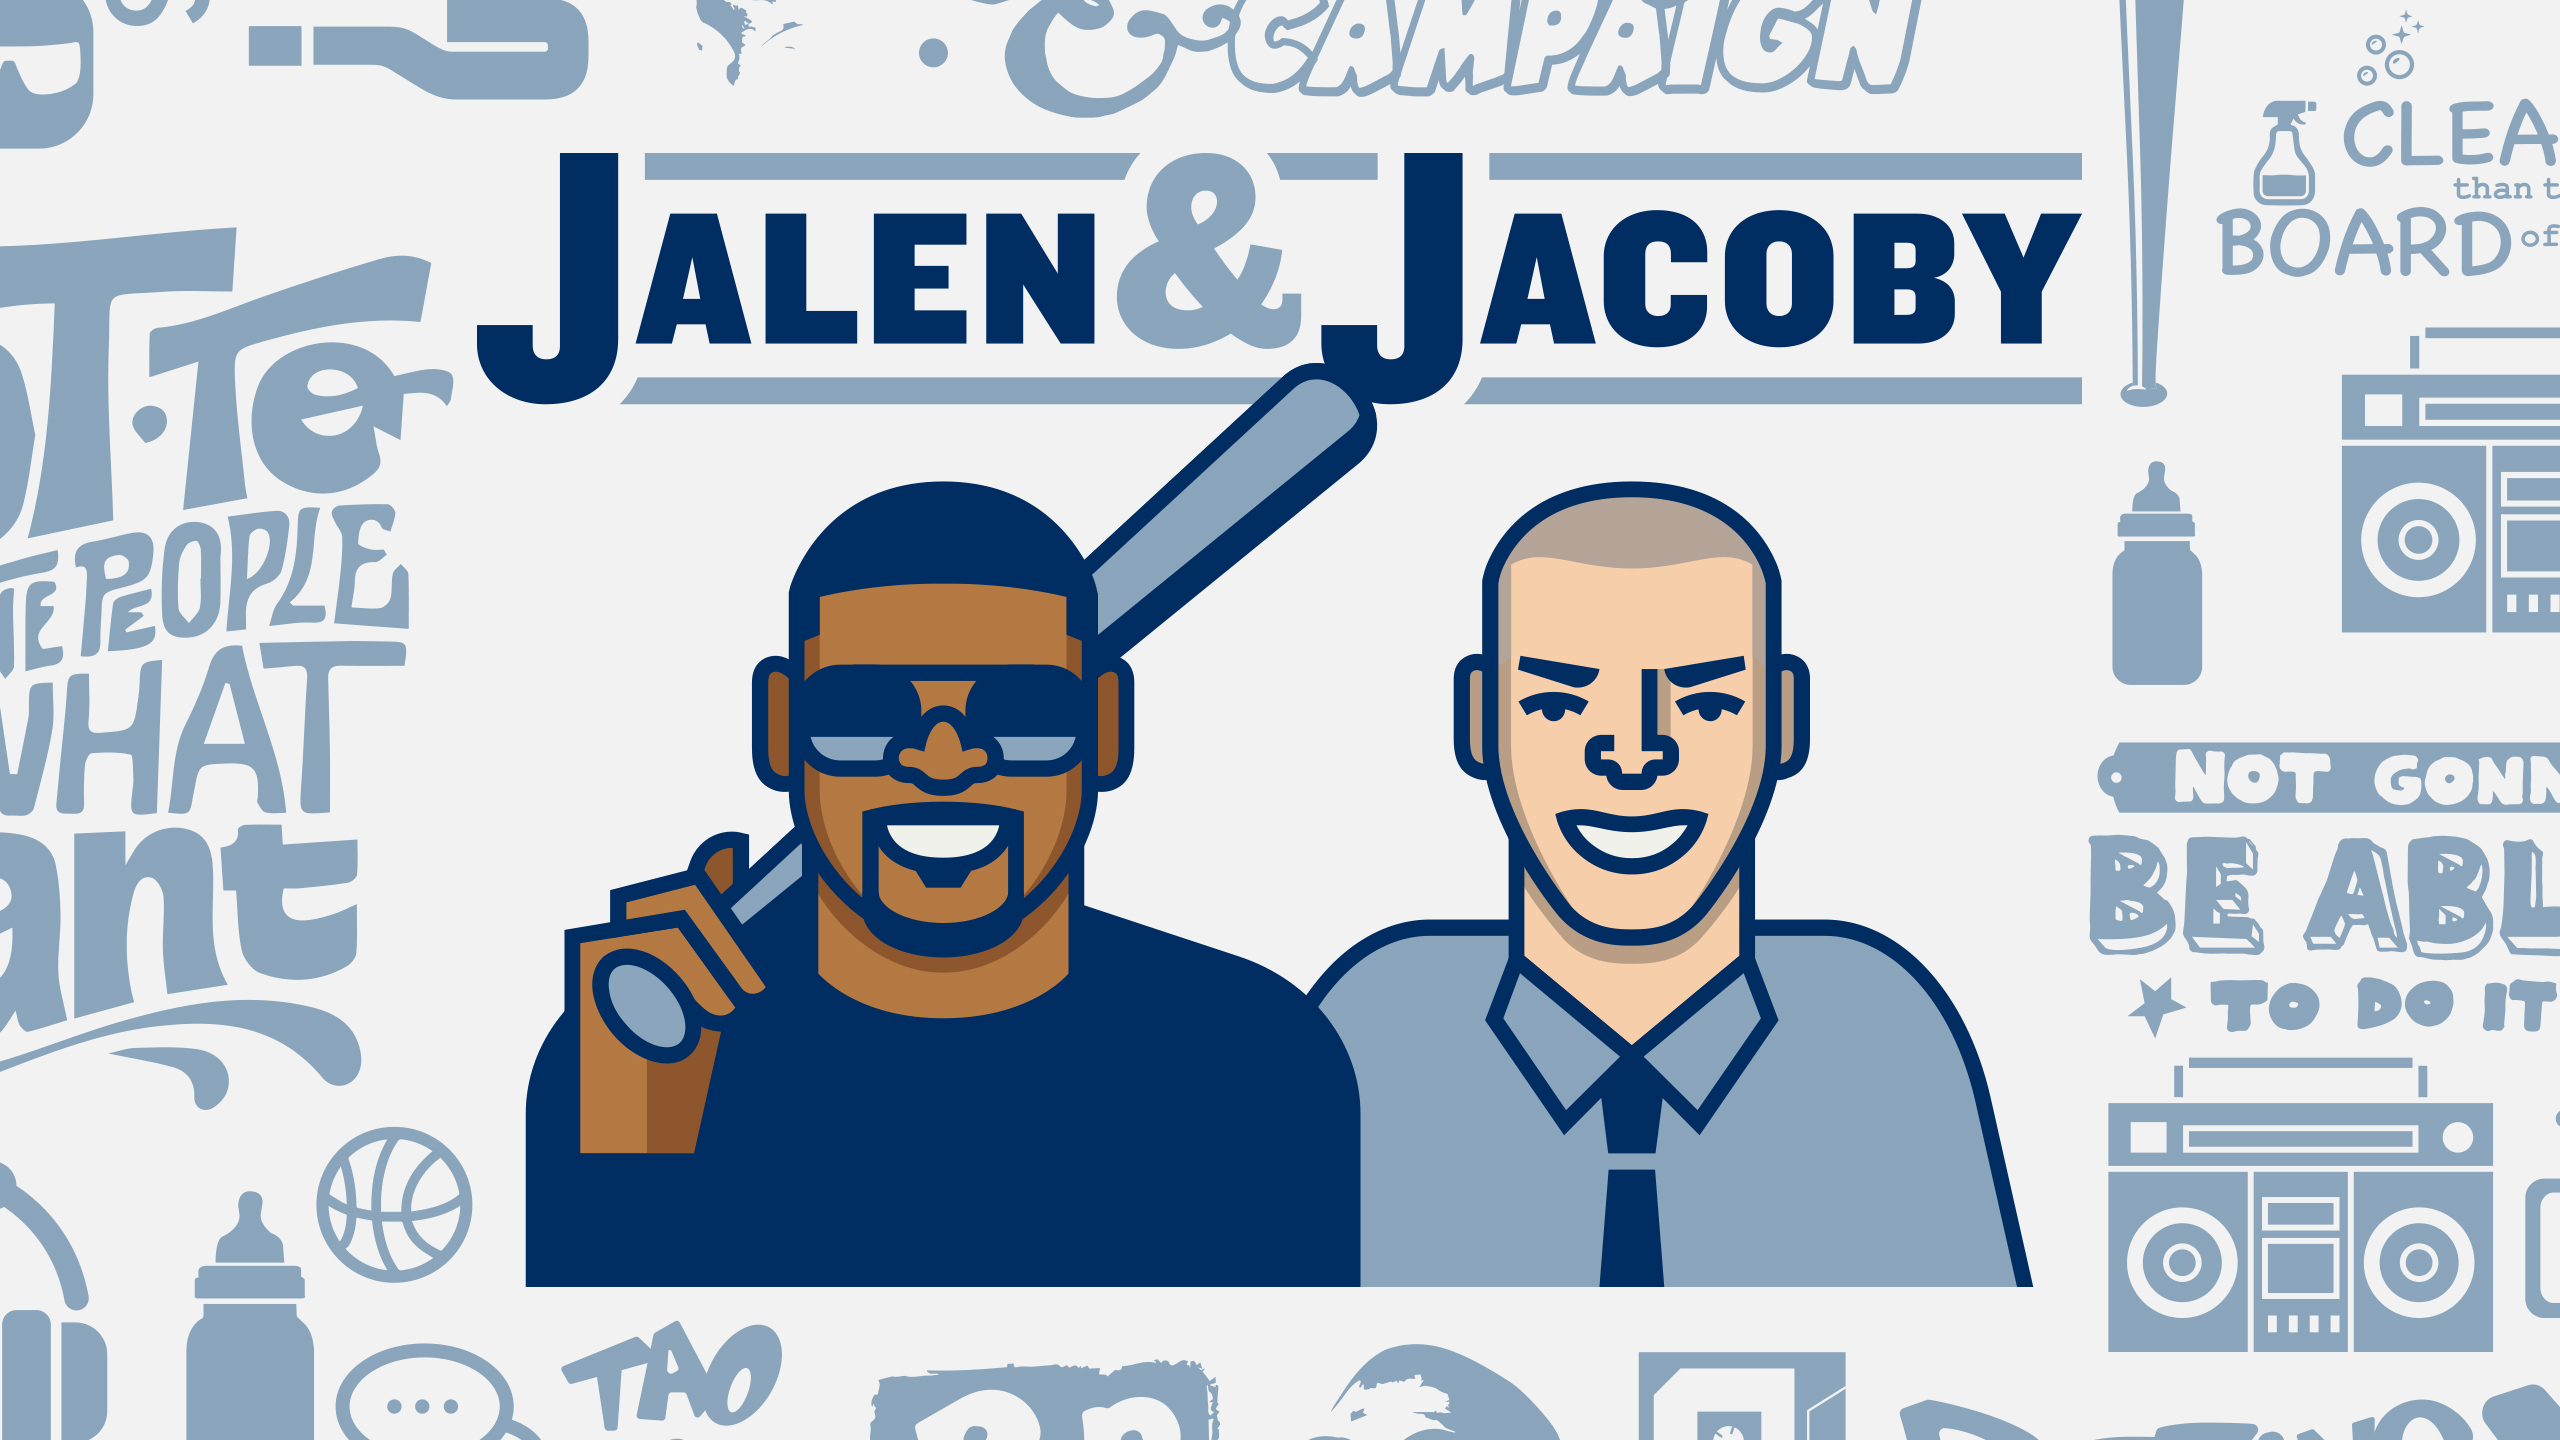 Wed, 12/12 - Jalen & Jacoby